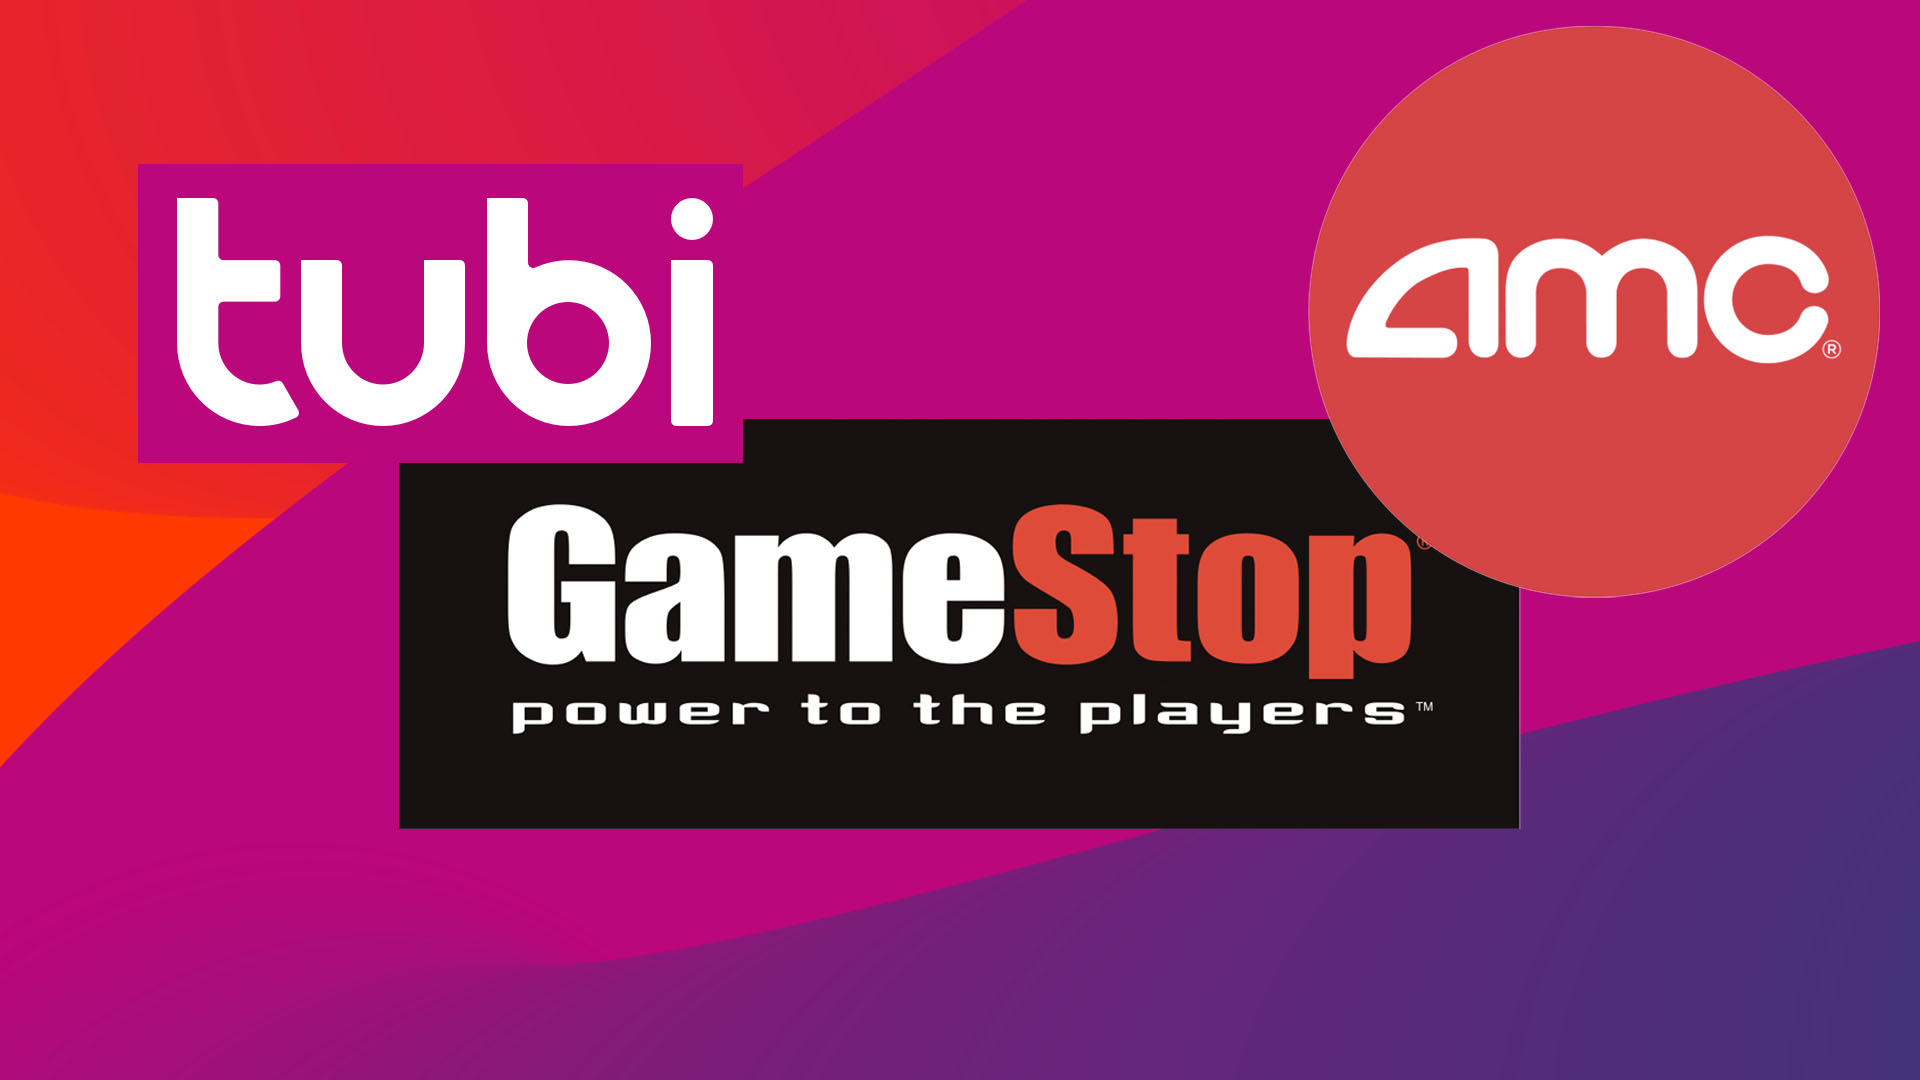 A GAMESTOP MOVEMENT FOR INDIE FILM